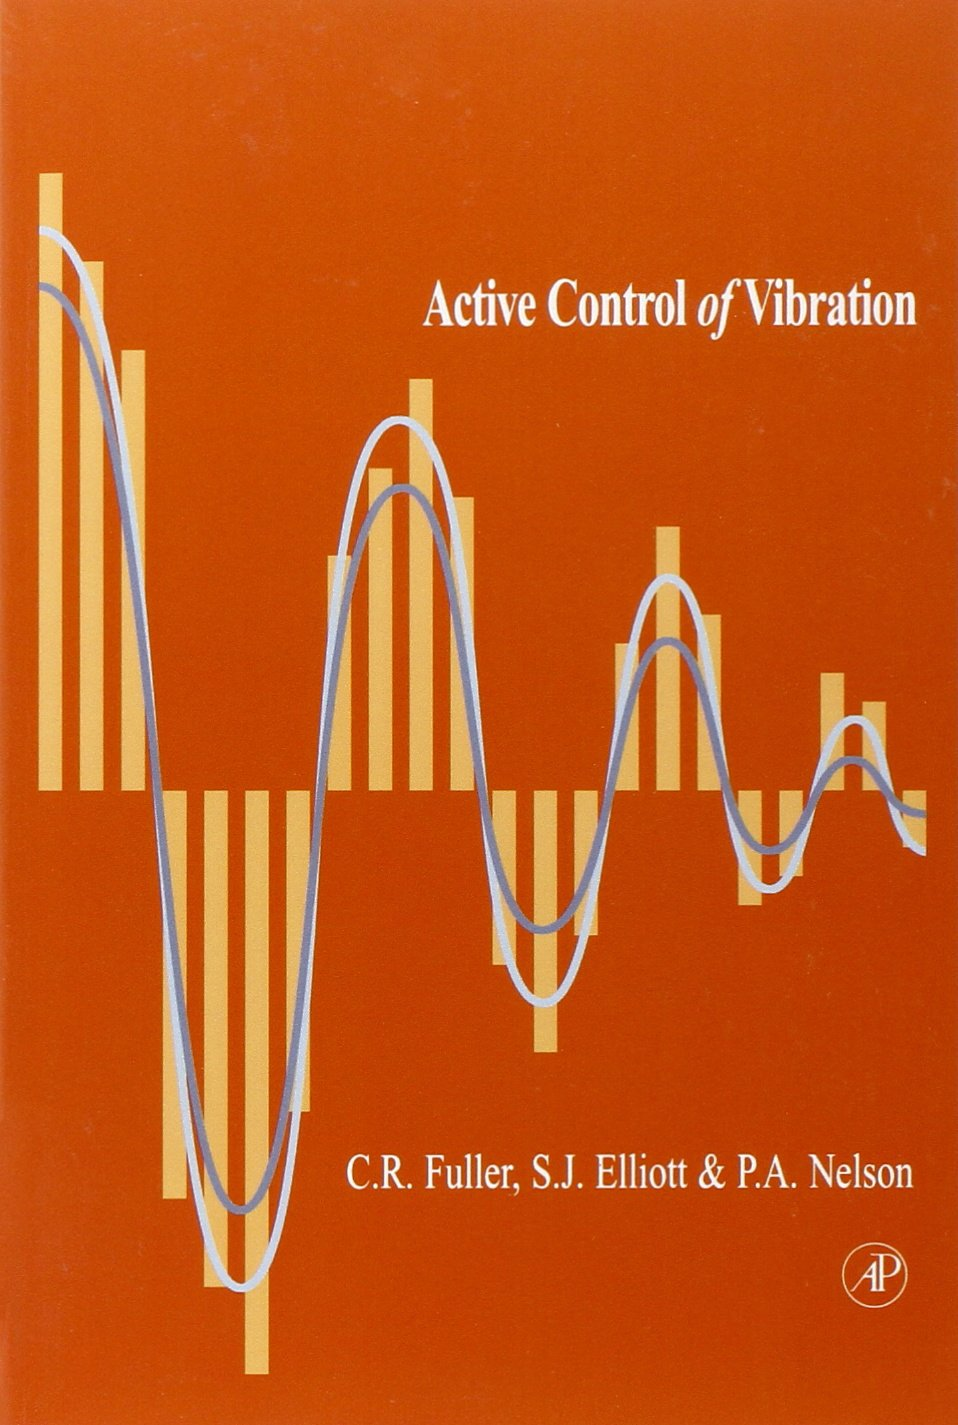 Active Control of Vibration by Academic Press